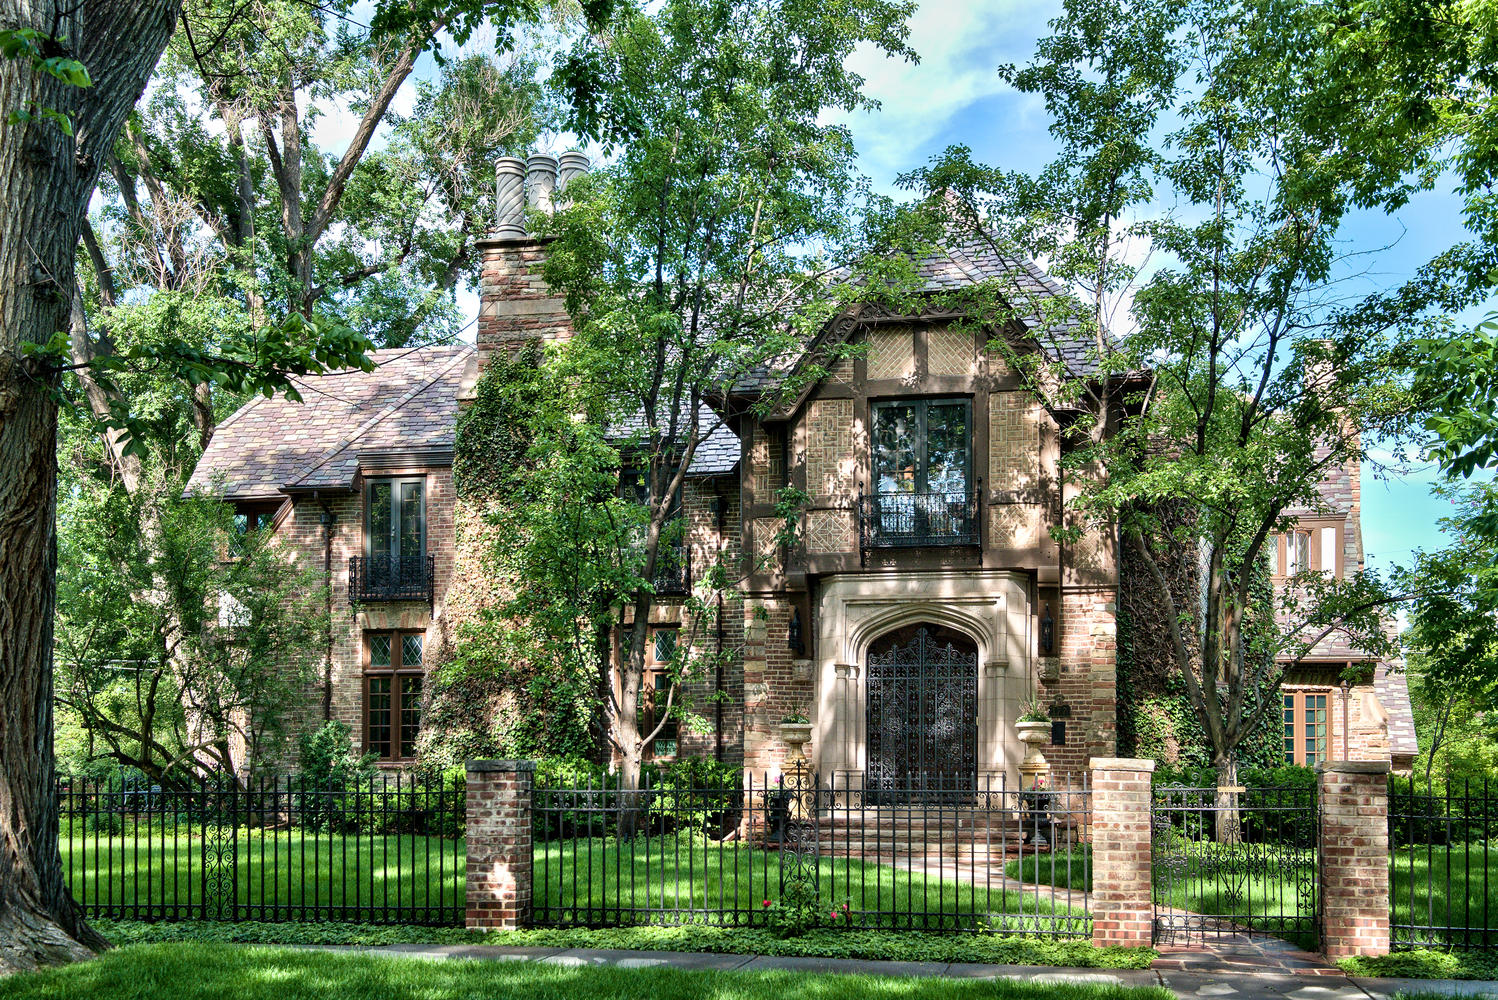 Maison unifamiliale pour l Vente à Grand 1930's Ivy Covered Tudor Gracefully Poised Behind Wrought Iron Gates 177 N. Humboldt Street Country Club, Denver, Colorado, 80218 États-Unis